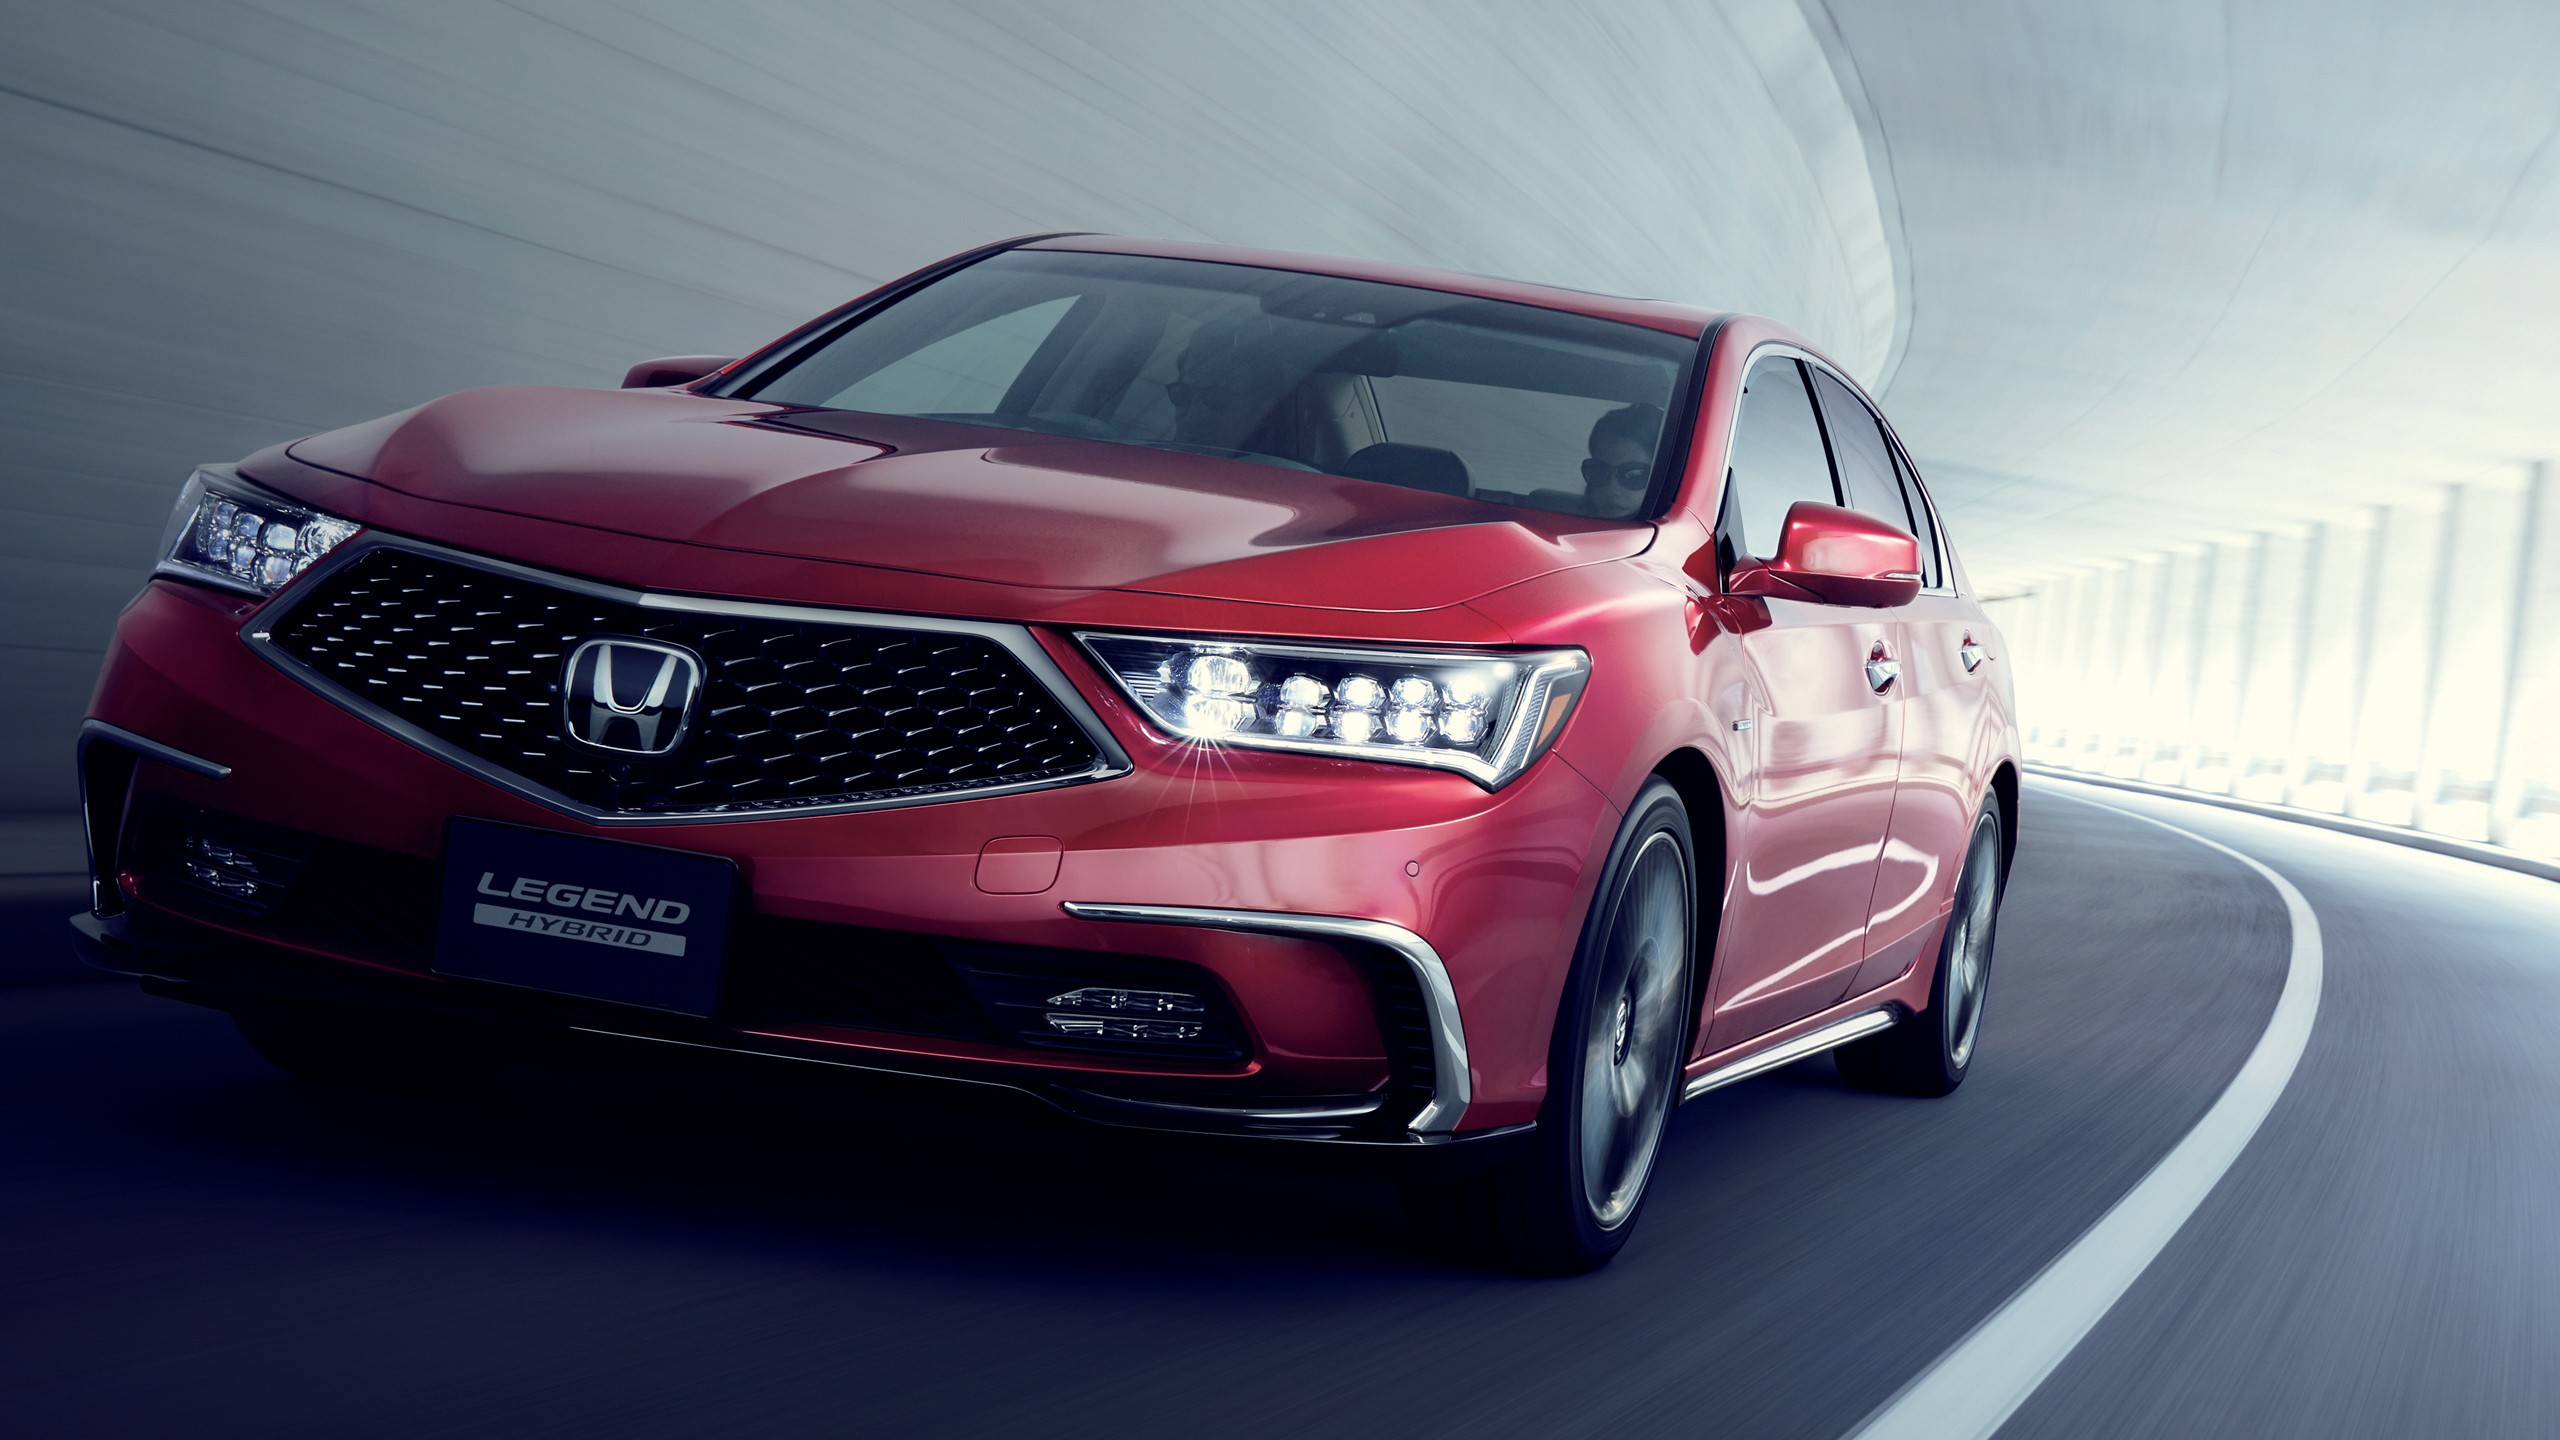 2019 Honda Accord >> 2019 Honda Legend Hybrid Wallpaper | HD Car Wallpapers ...